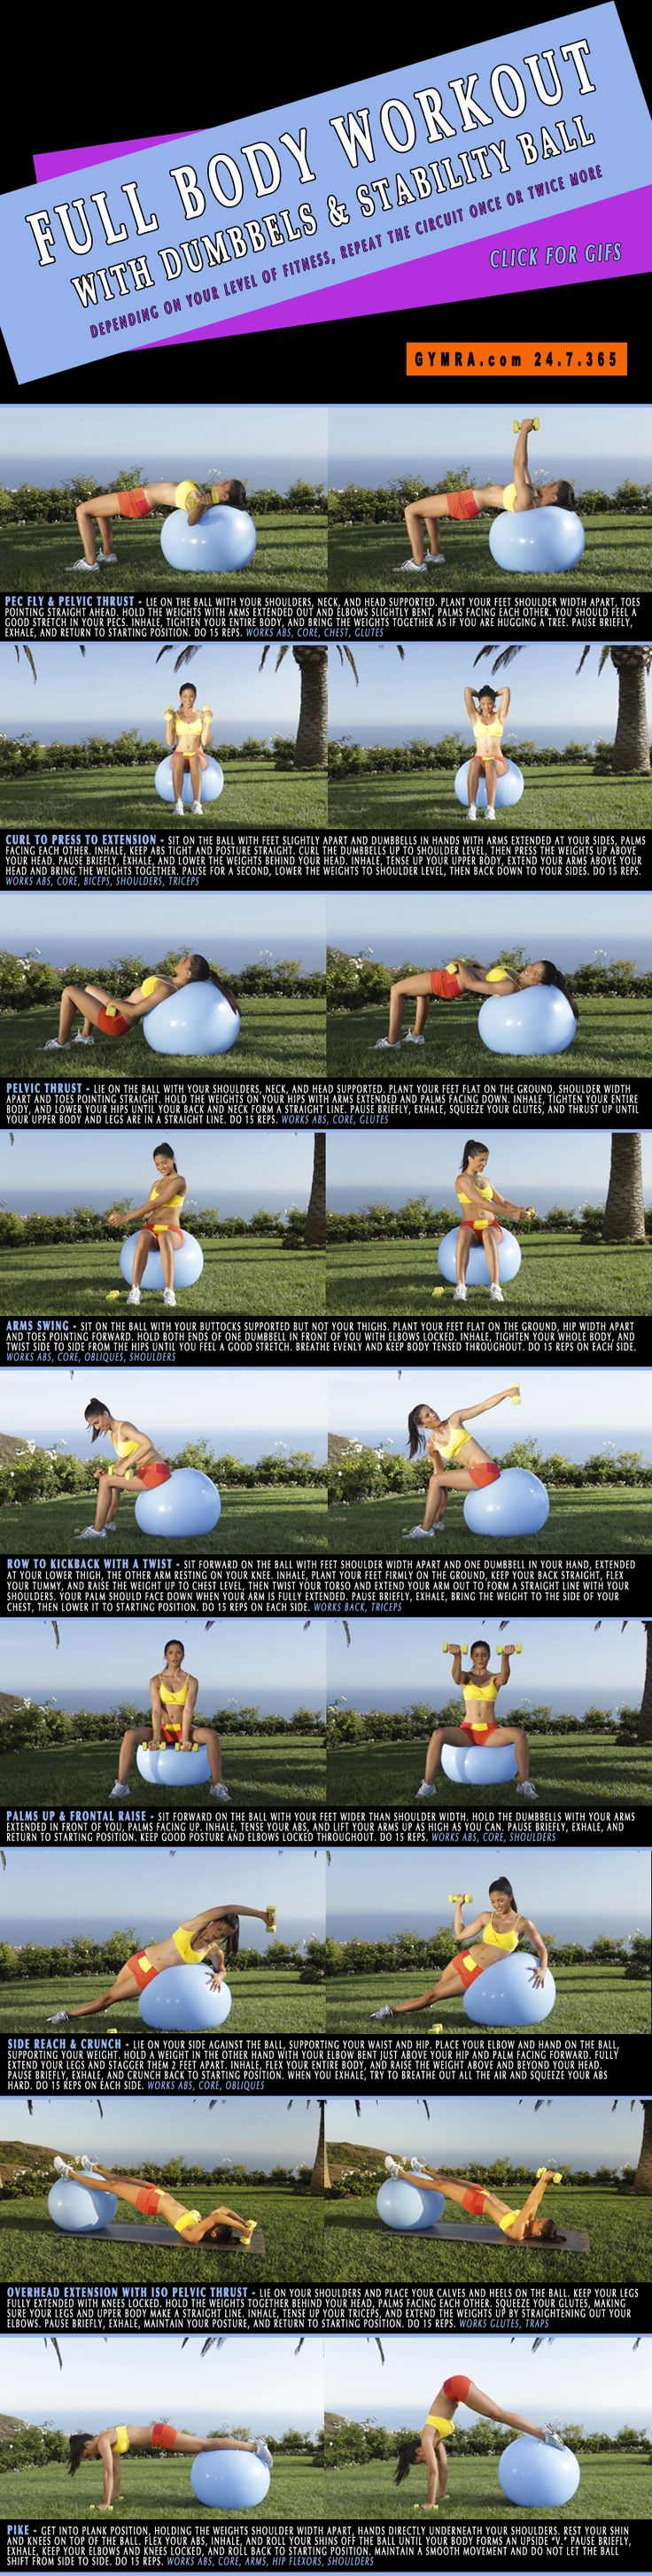 Full Body #Workout. A stability ball engages all your #muscles and builds strength while improving stability. Try Gymra free for 30 days - no credit card required!